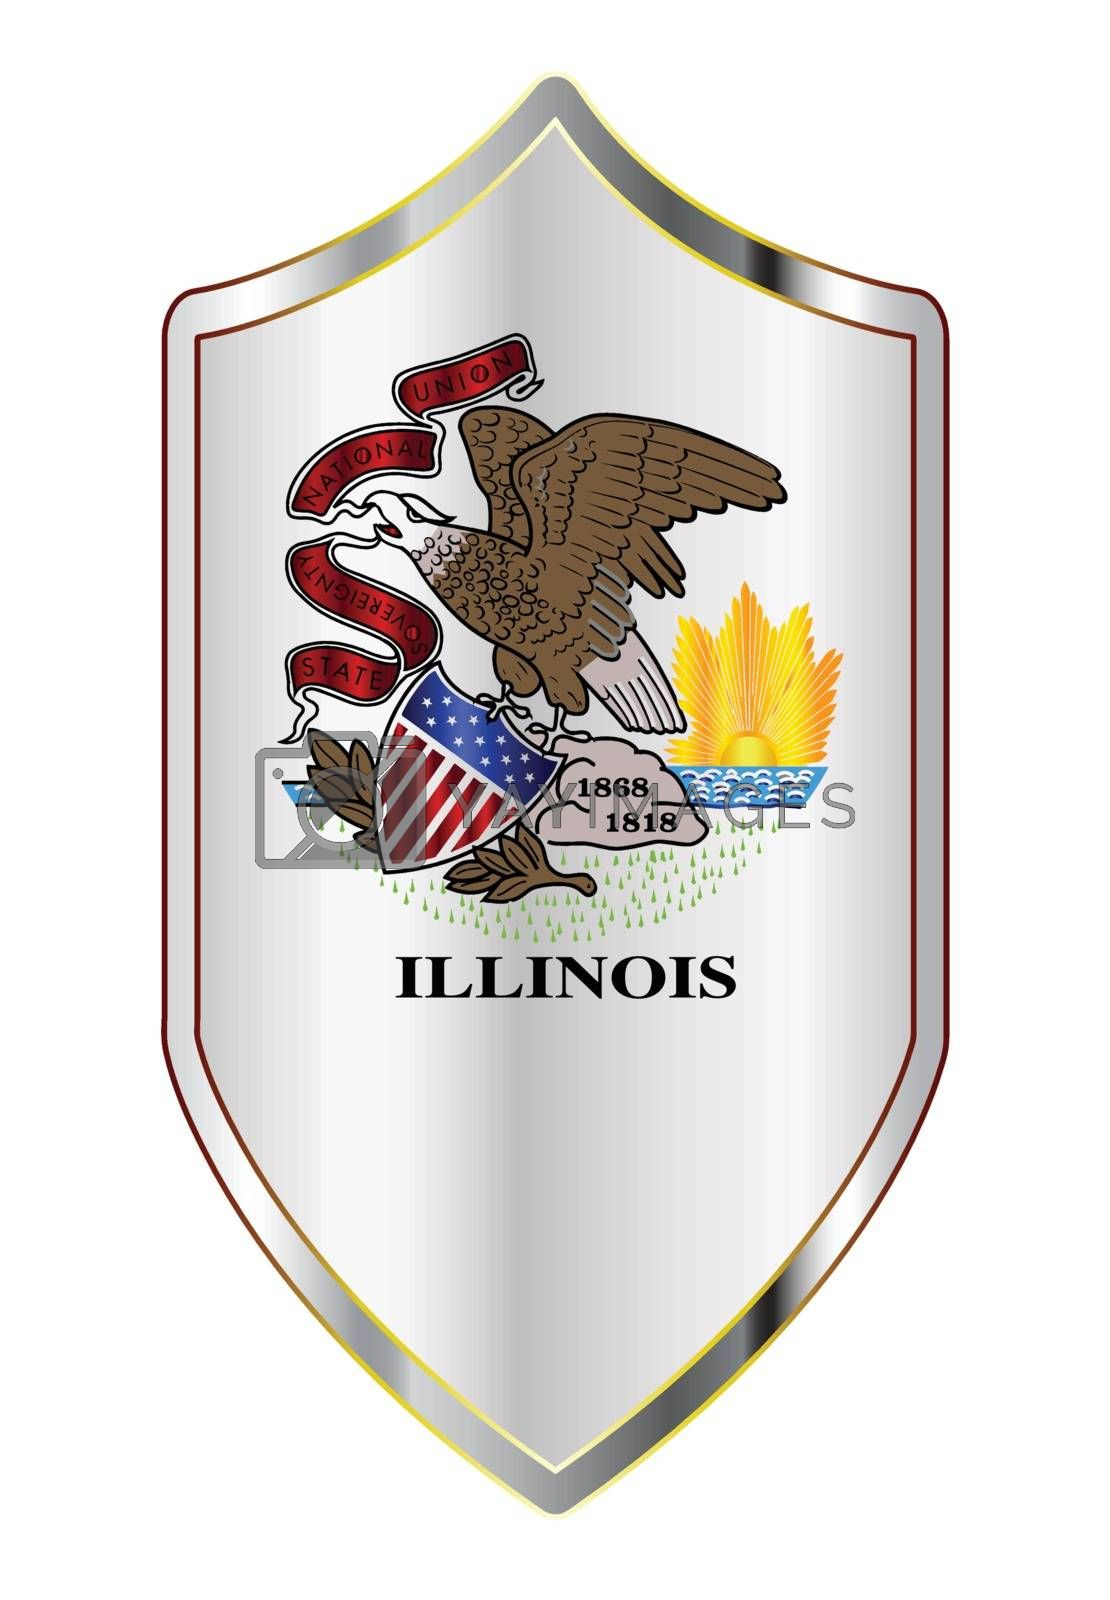 A typical crusader type shield with the state flag of Illinois all isolated on a white background